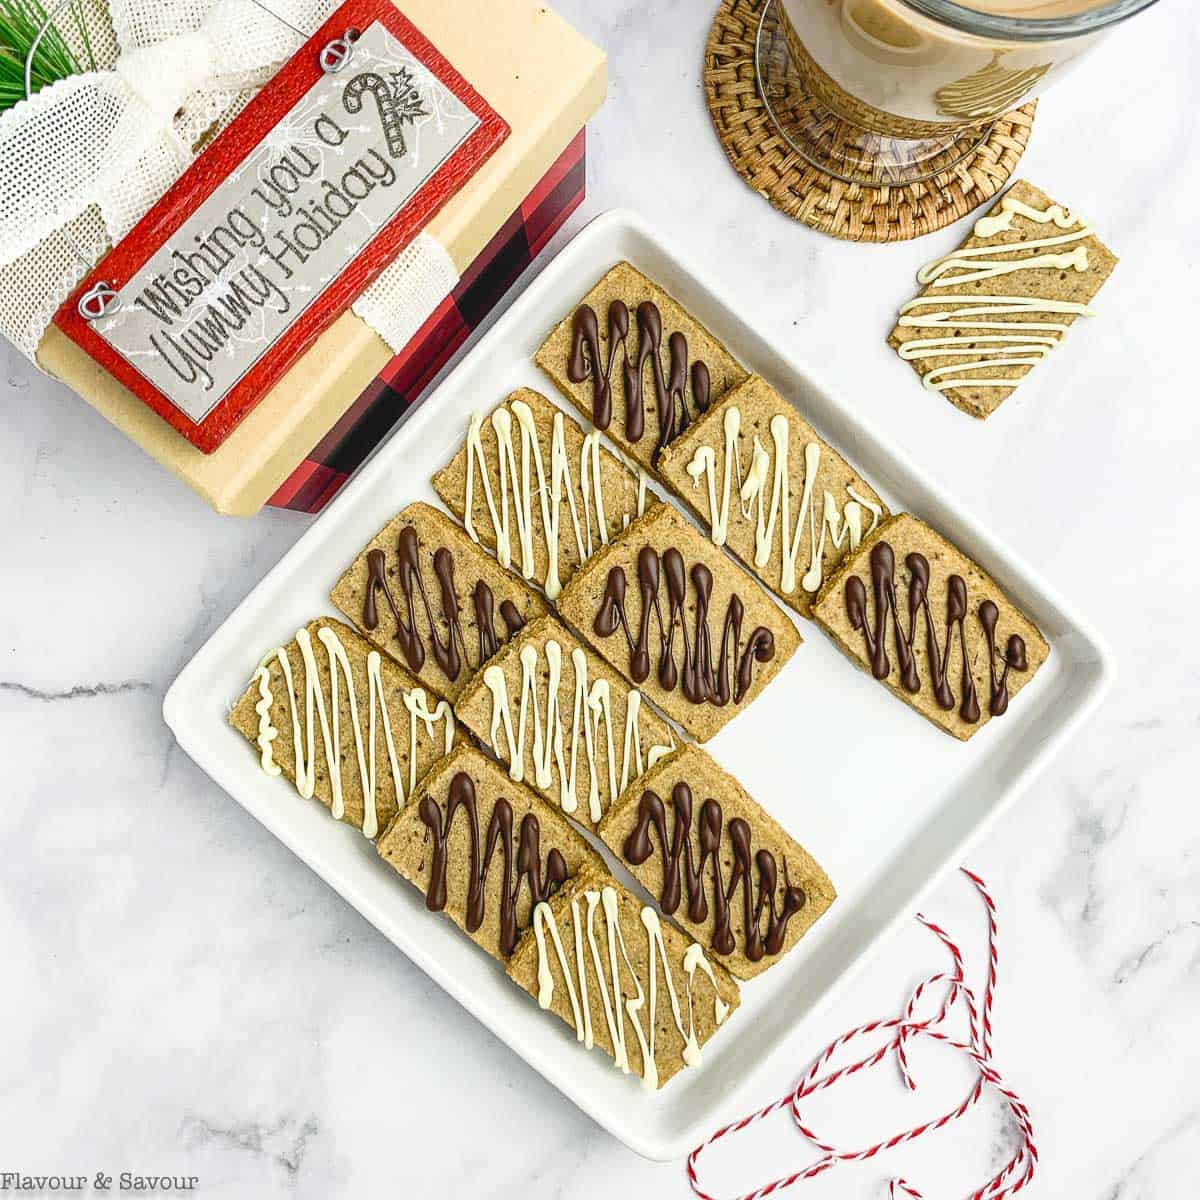 Overhead view of Grain-Free Espresso Almond Flour Shortbread Cookies drizzled with white and dark chocolate